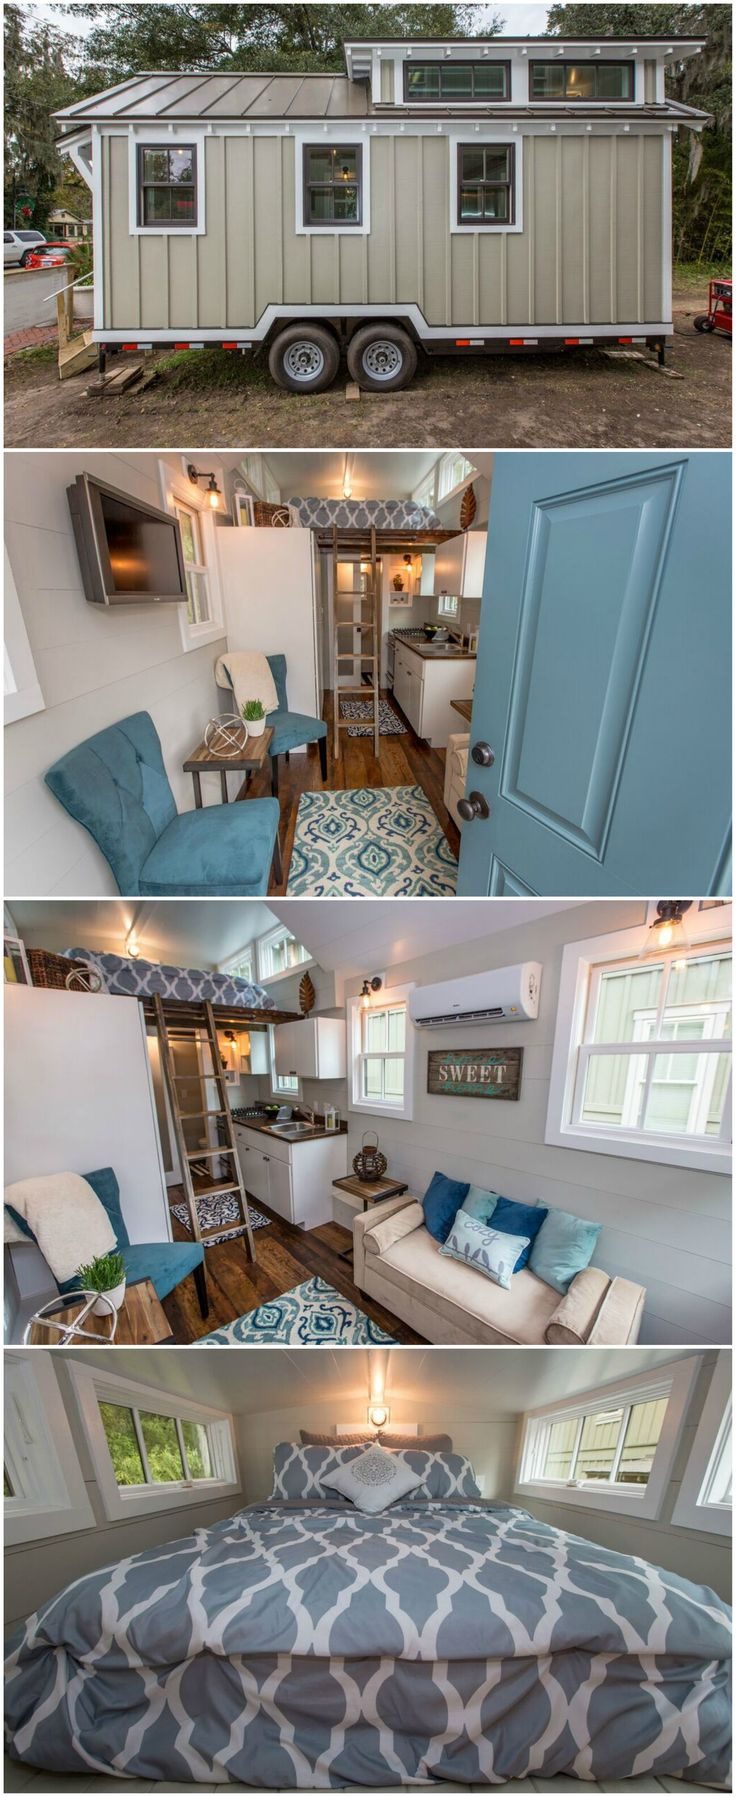 The Palmetto is a gorgeous tiny house built and donated by Driftwood Homes to the South Carolina flood victims in 2014. A master loft and storage loft are both accessed by a ladder. A wood countertop, four burner range, and 3/4 size refrigerator complete the kitchen.